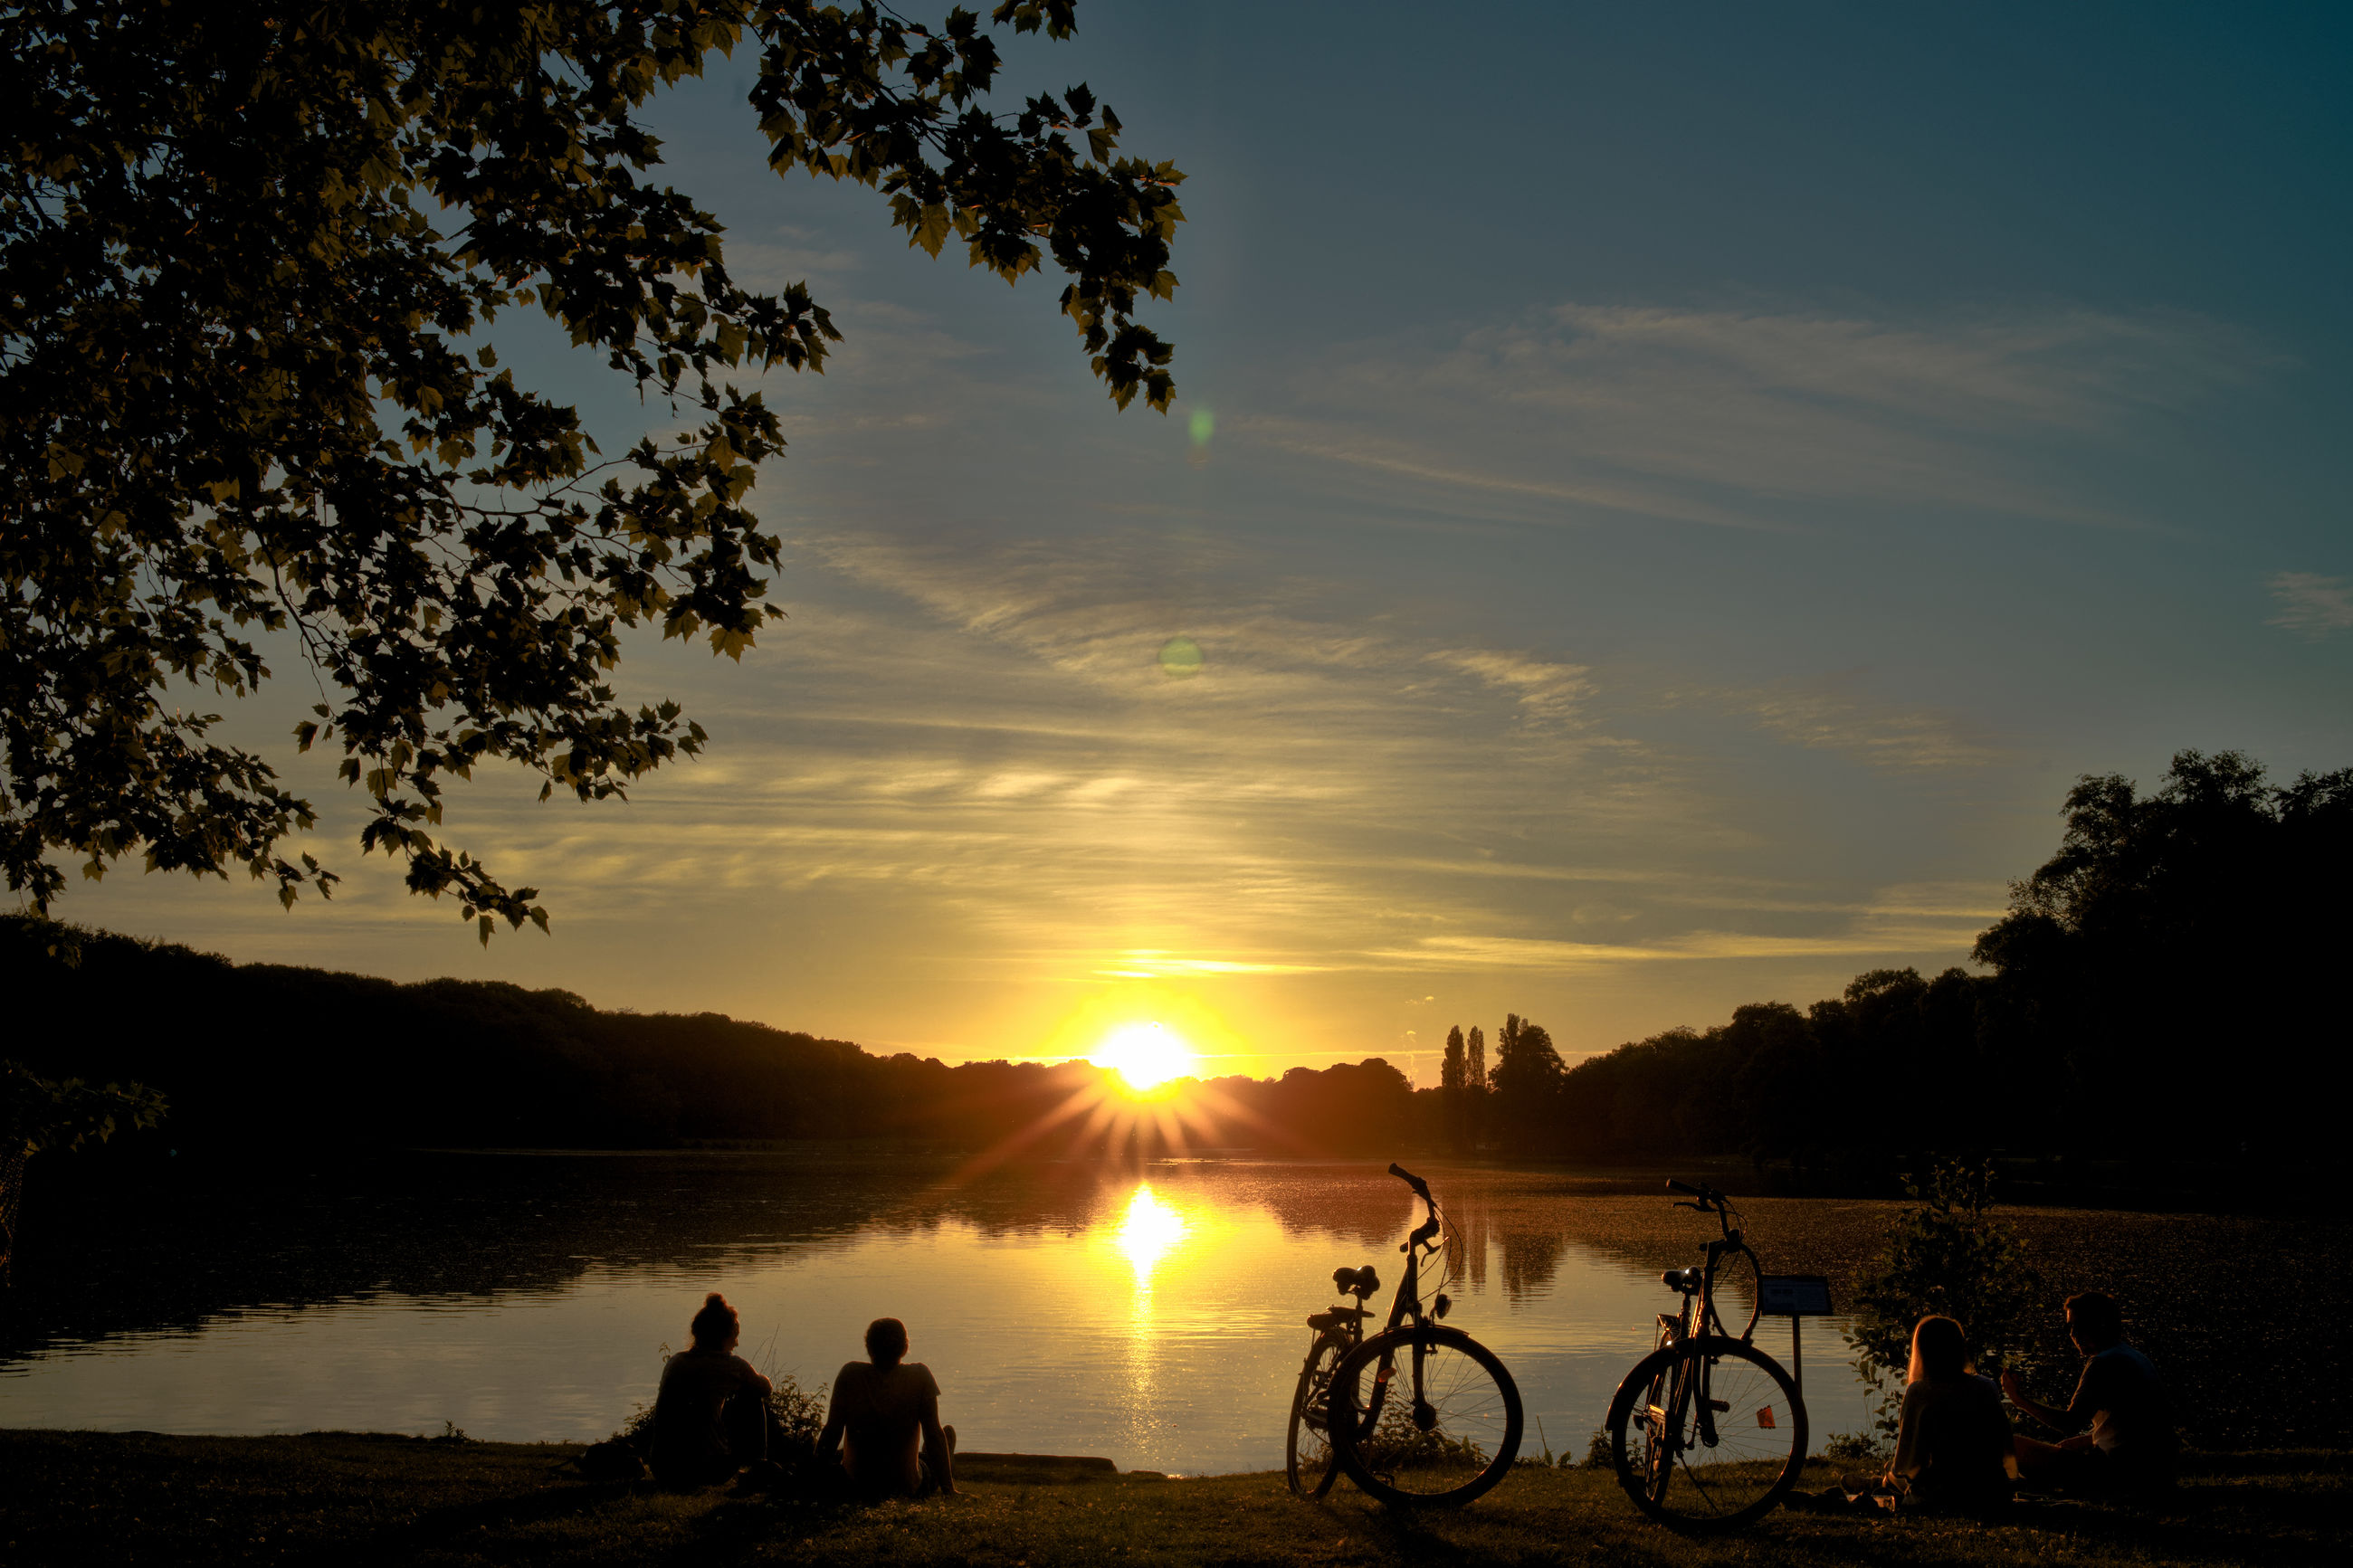 sunset, sky, silhouette, water, beauty in nature, tree, orange color, real people, group of people, scenics - nature, men, plant, cloud - sky, nature, leisure activity, bicycle, tranquility, lifestyles, sun, outdoors